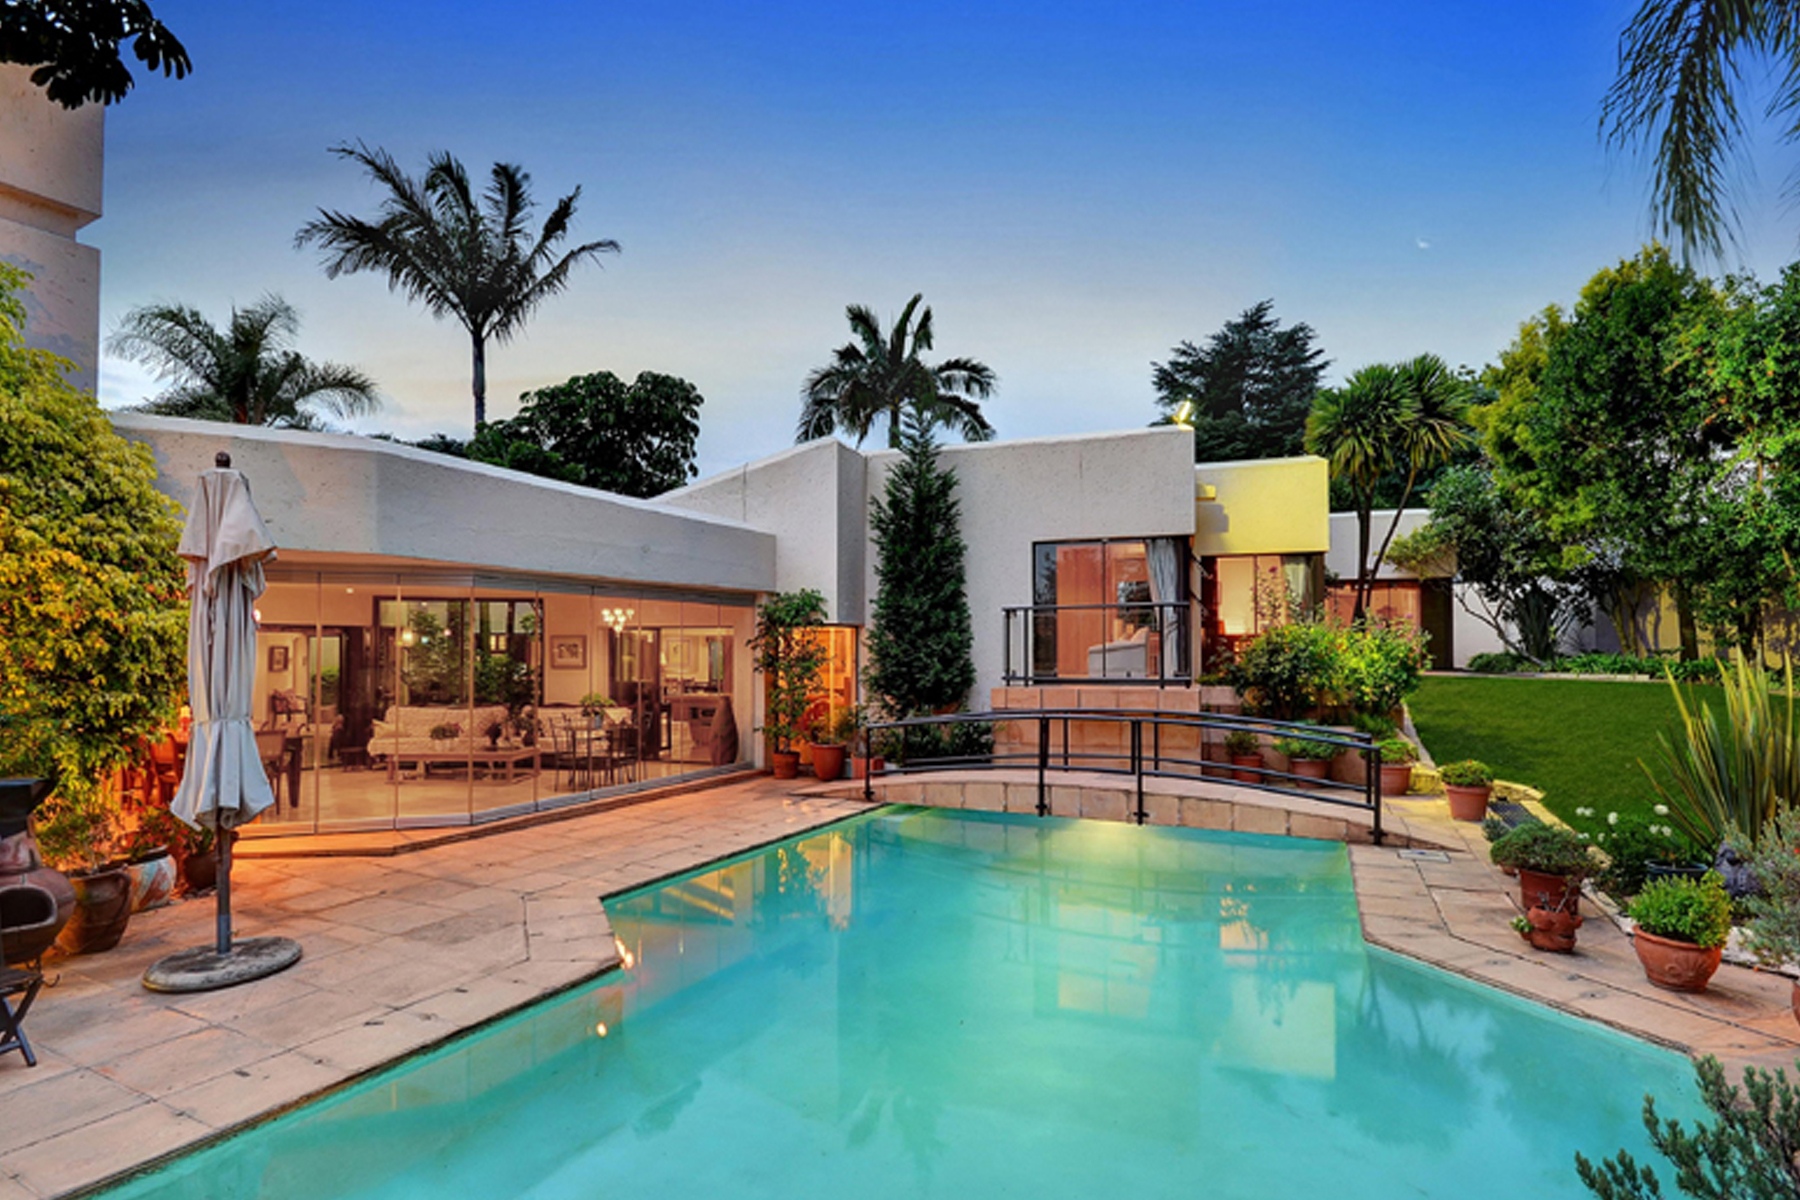 Single Family Home for Sale at Atholl Atholl, Johannesburg, Gauteng South Africa